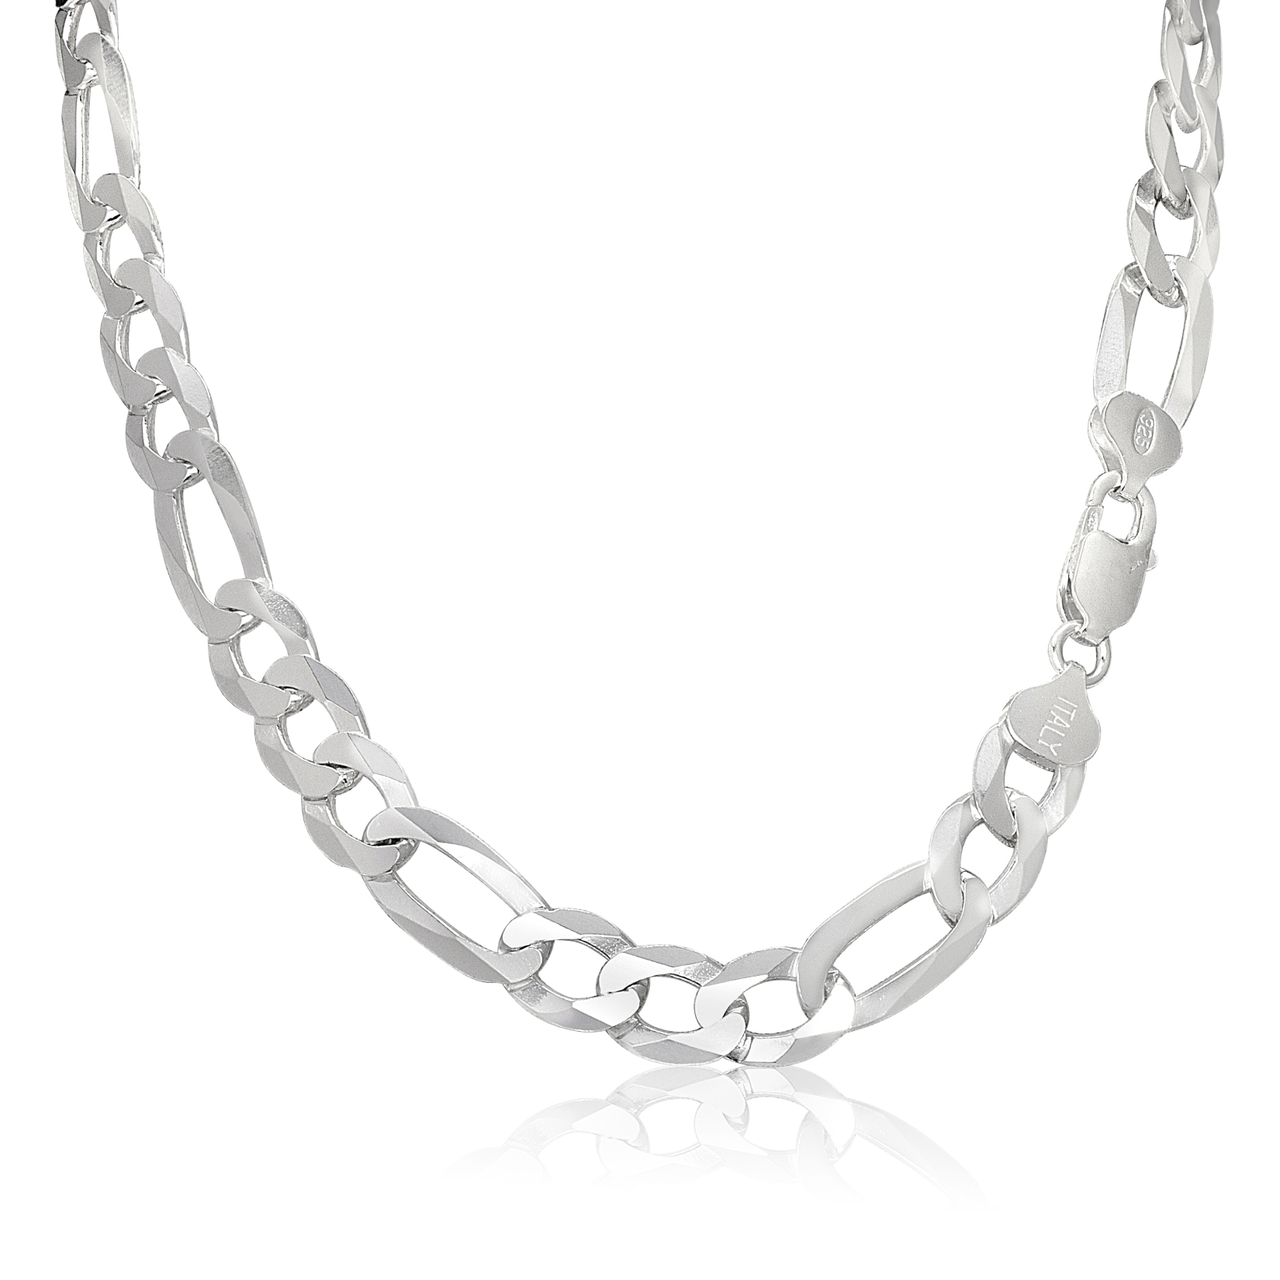 69bdf8d9177ff Solid .925 Sterling Silver 9.5mm Men's 220X Figaro Chain Necklace